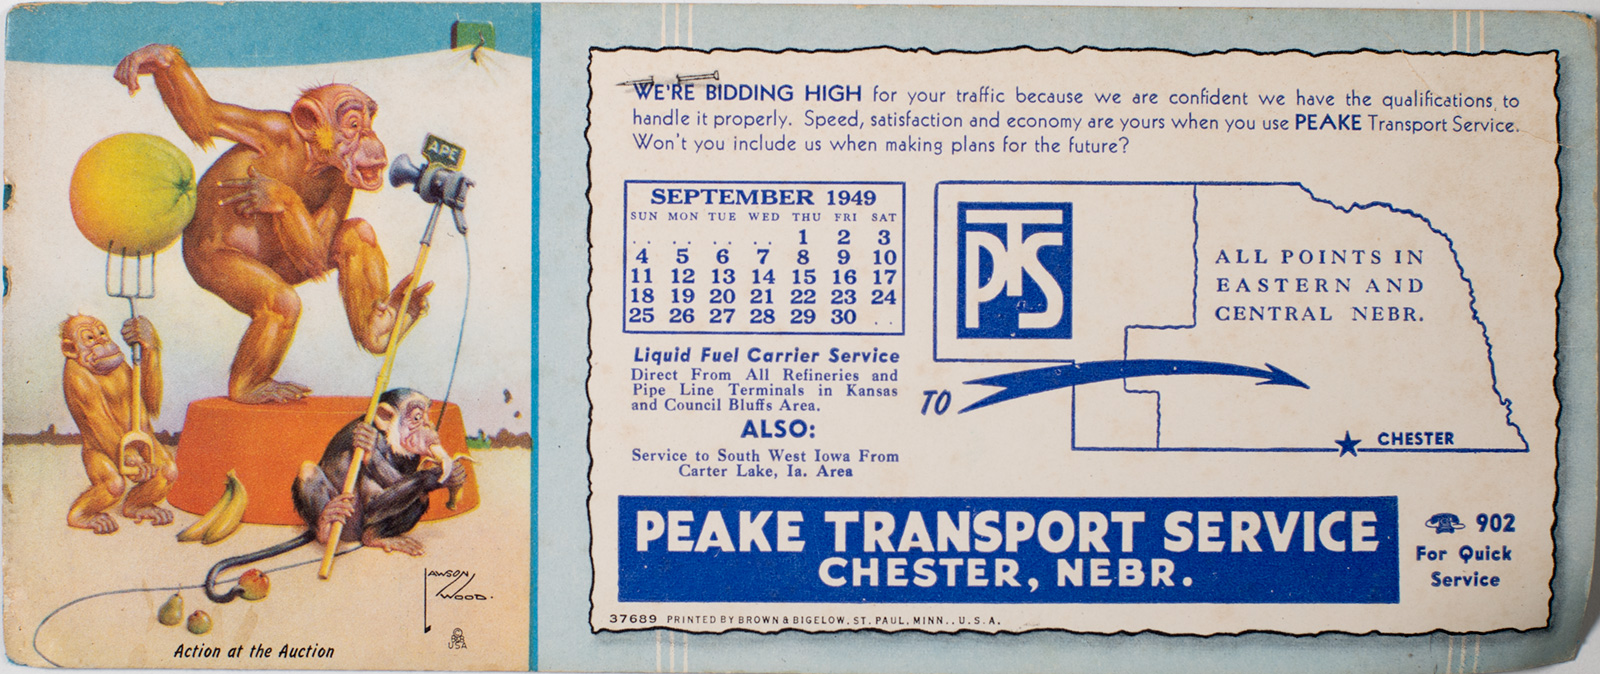 Peake Transport Blotter Pad & Calendar September 1949 Image